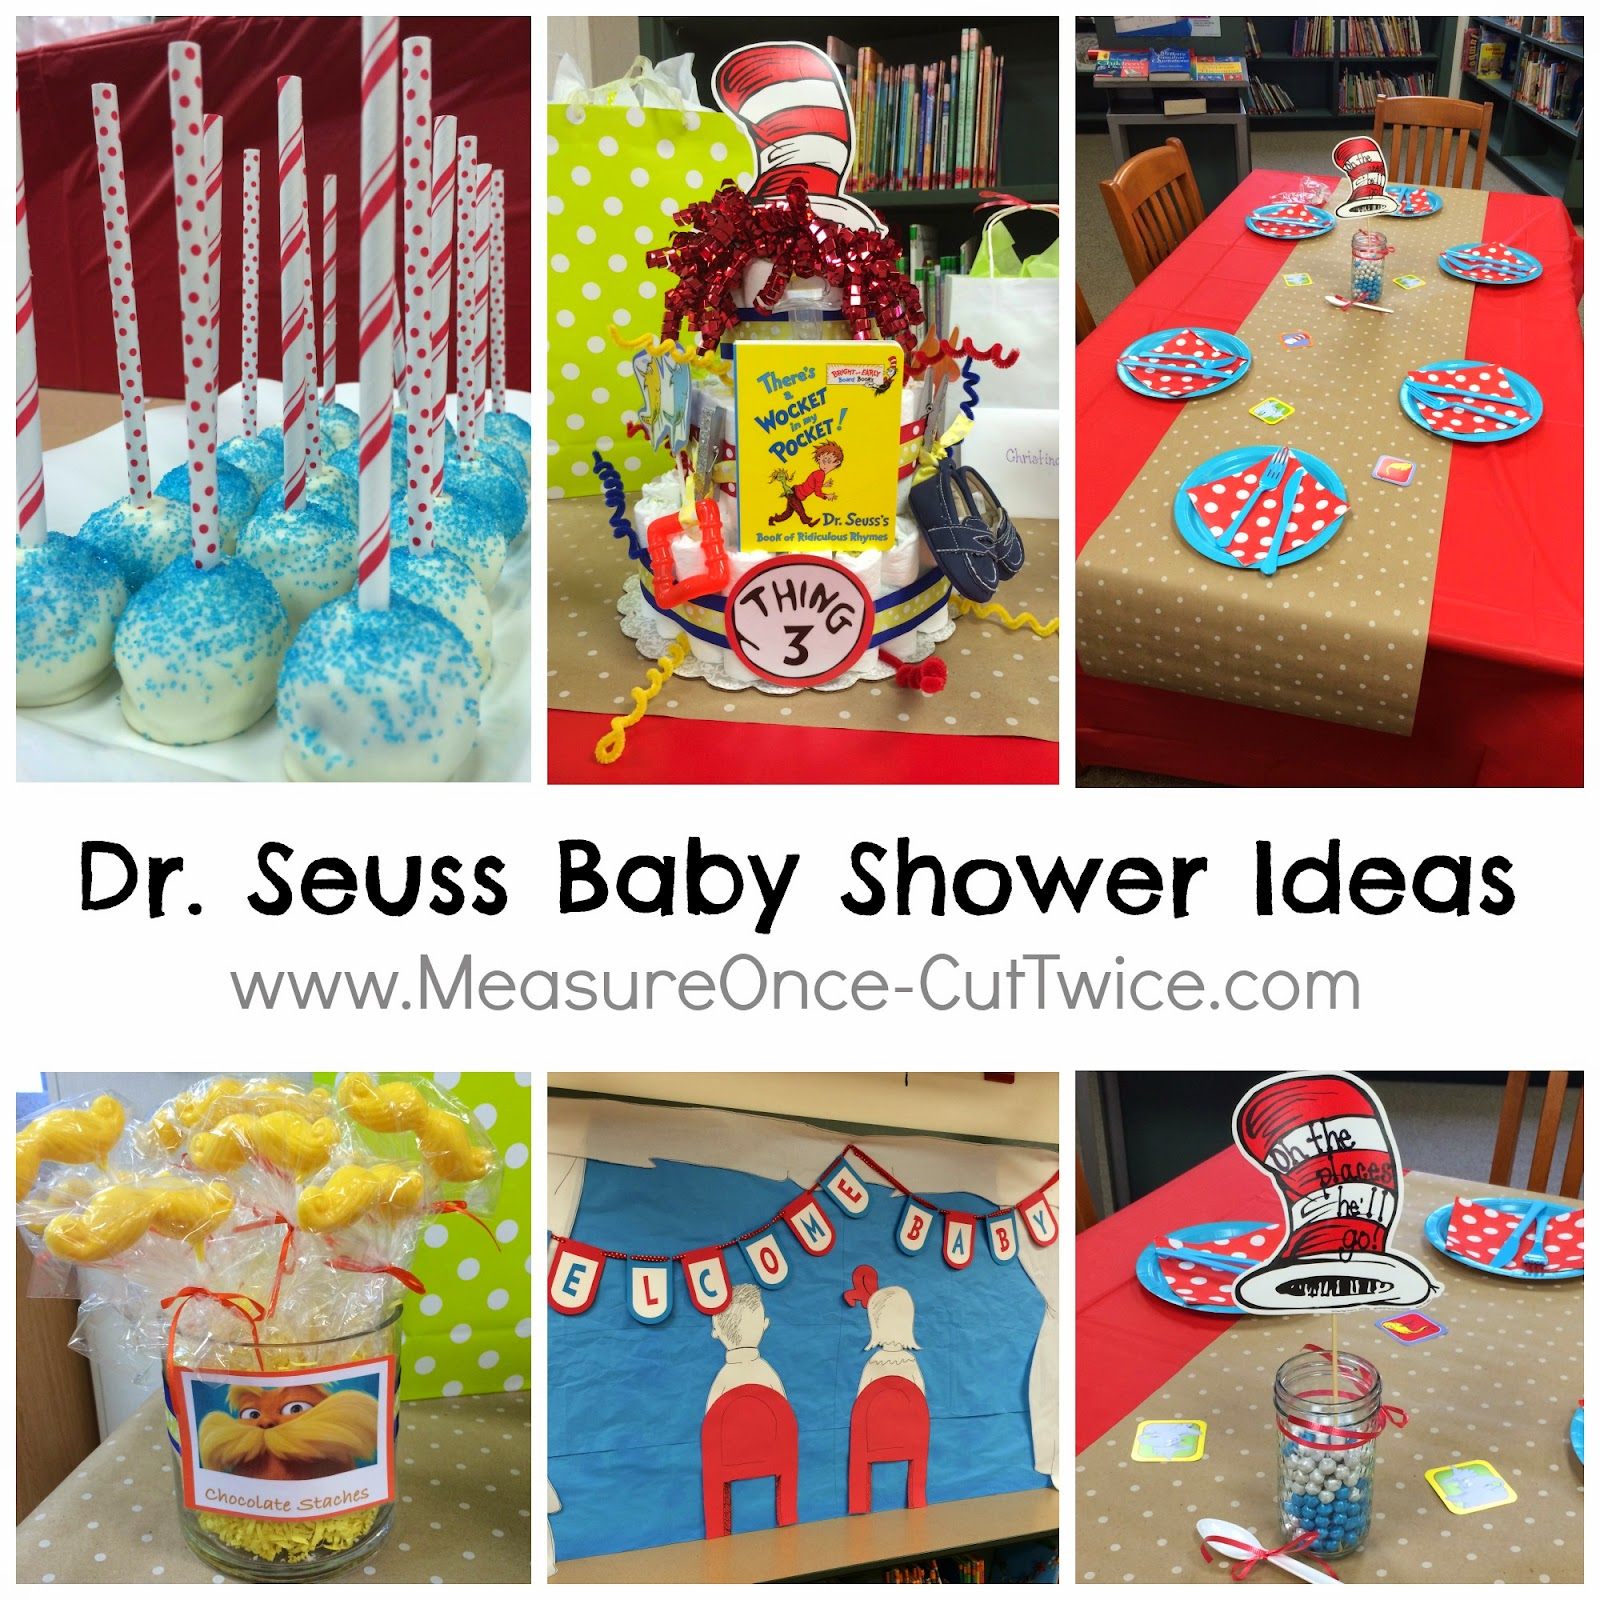 Great Dr Seuss Baby Shower Centerpiece Ideas Dr Seuss Baby Shower. Dr Seuss Baby  Shower Centerpiece Ideas Dr Seuss Baby Shower.